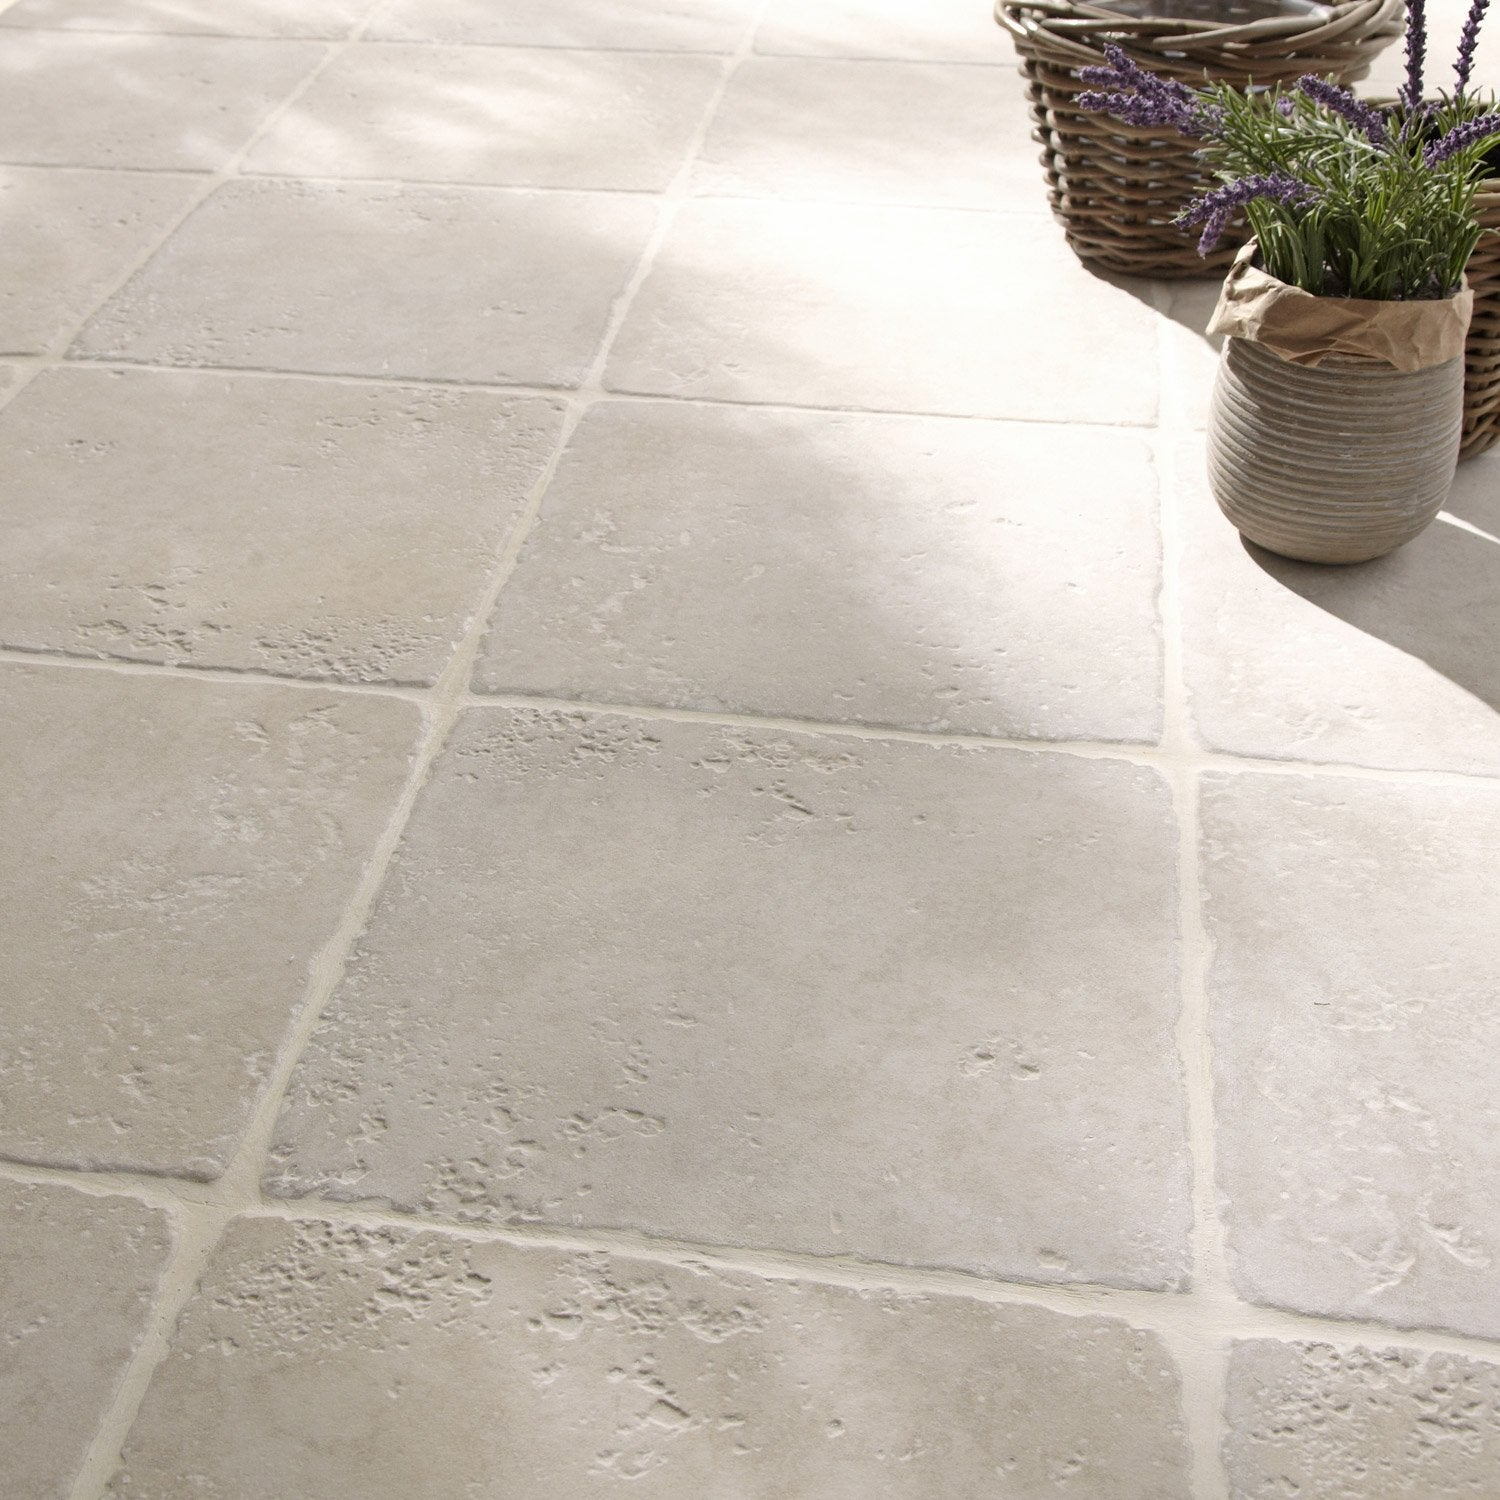 Carrelage blanc effet pierre toscane x cm - Leroy merlin video carrelage ...